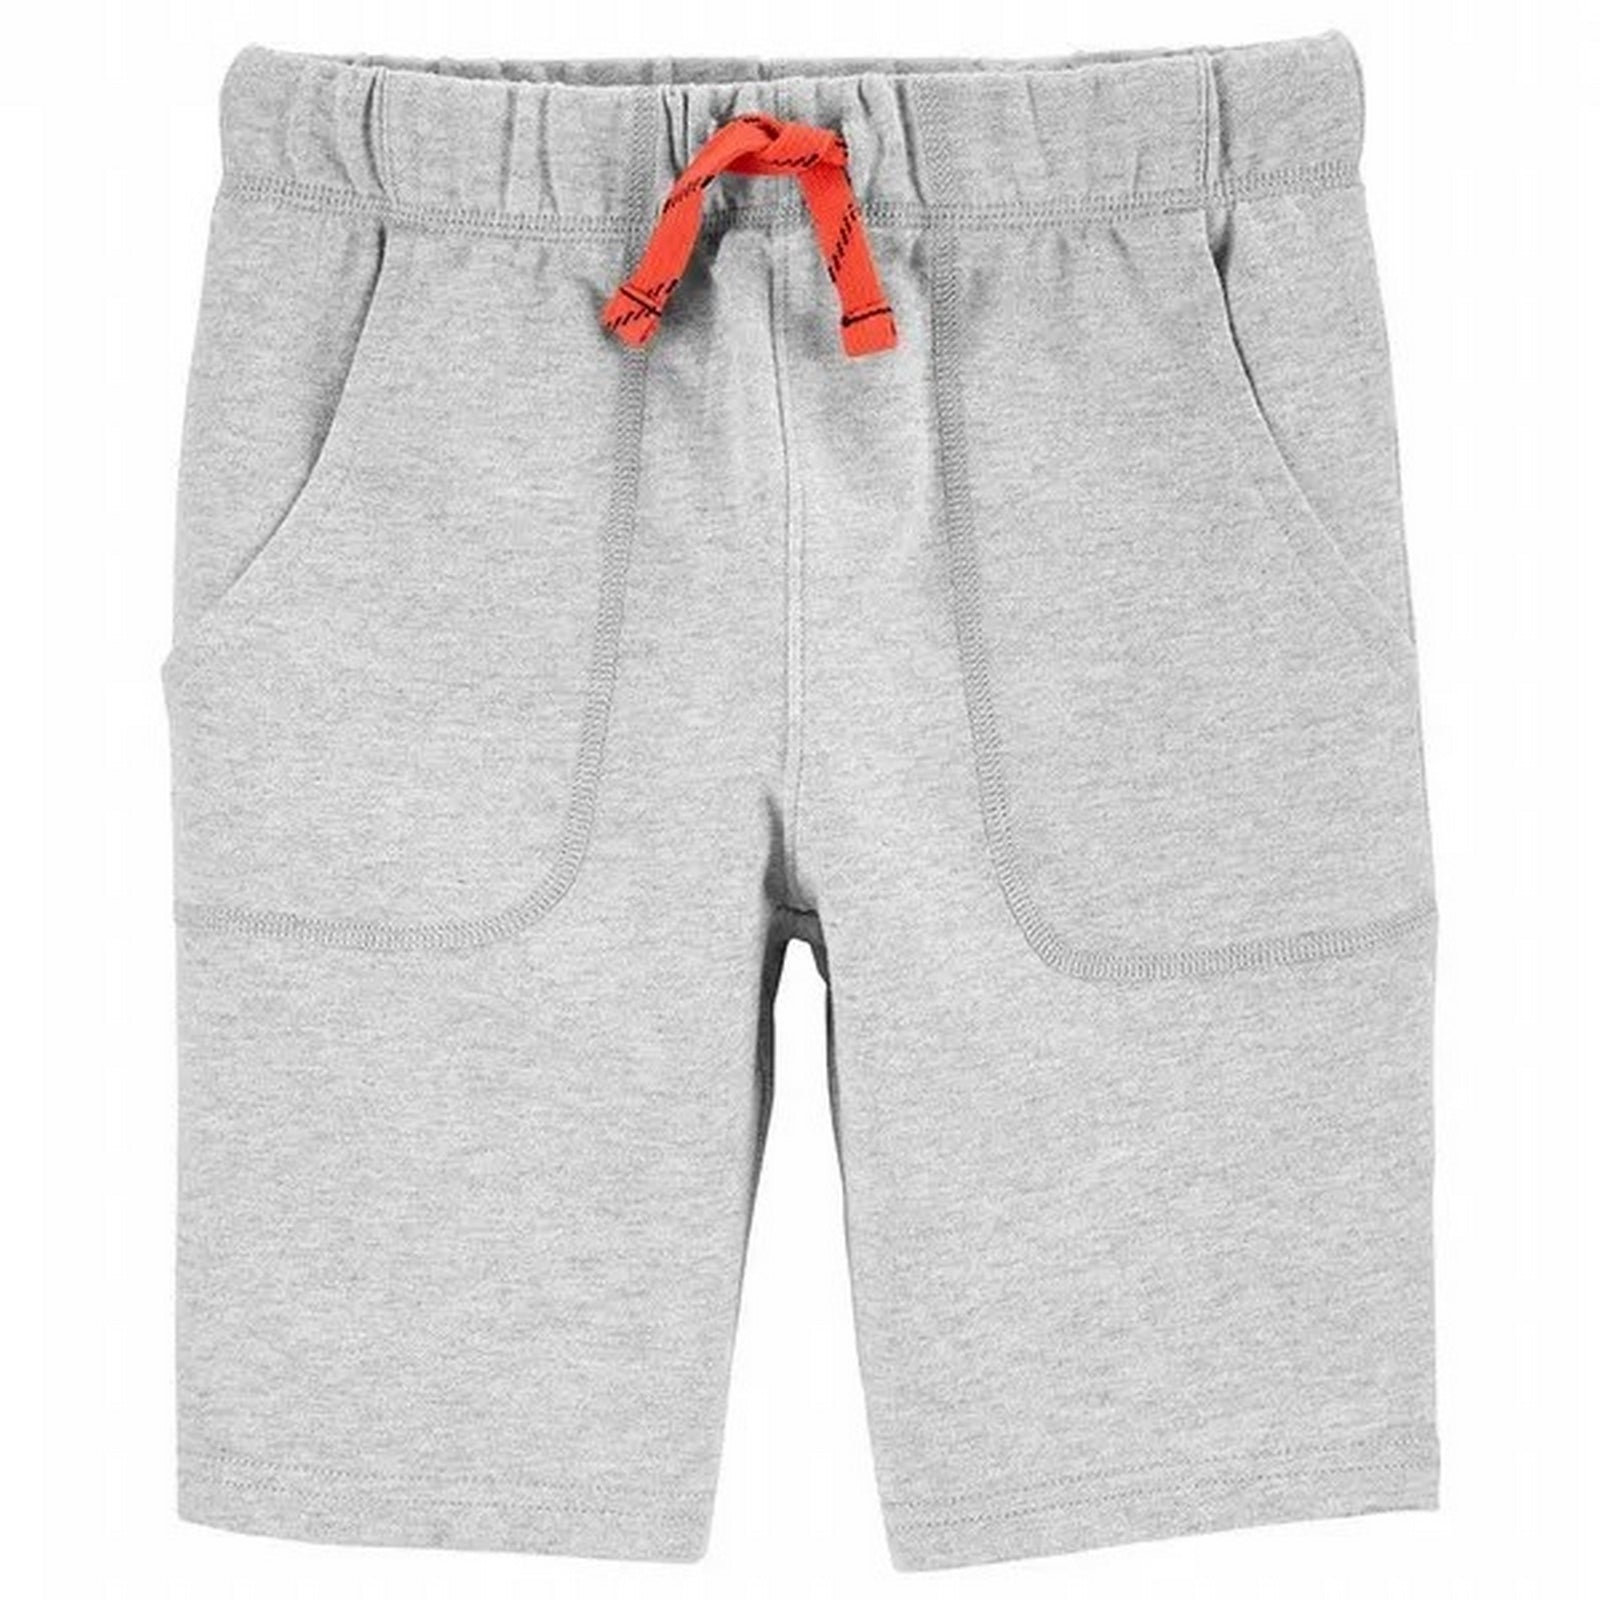 Carter's Pull-On French Terry Shorts 3H418310